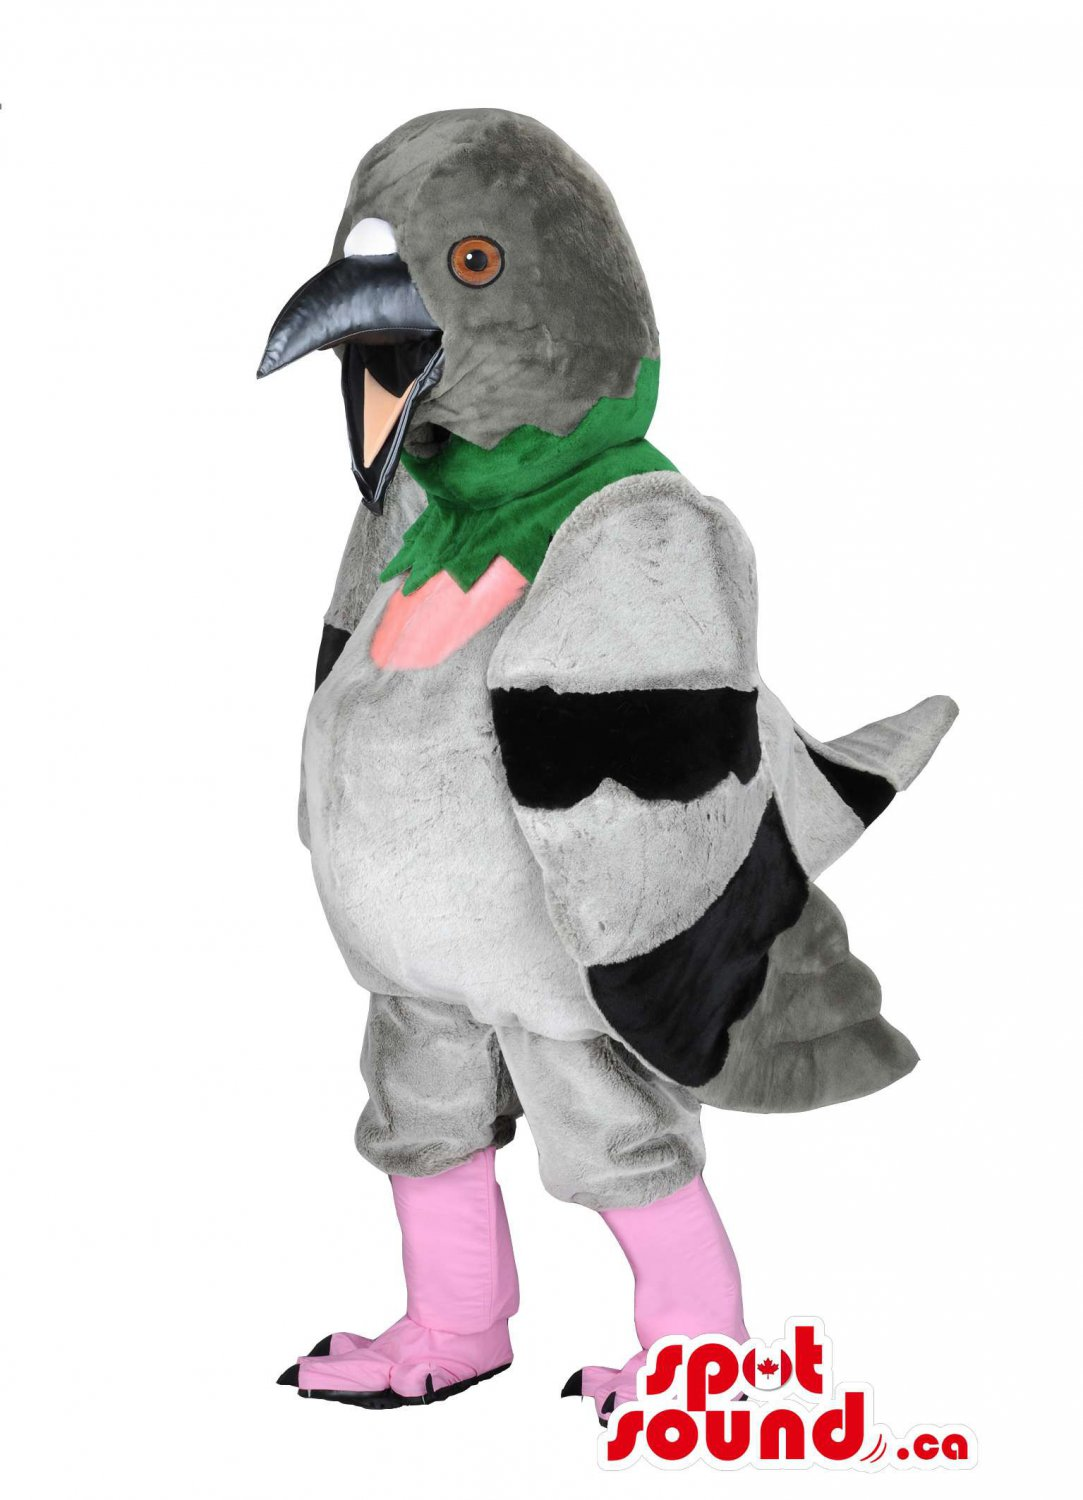 Grey And Green Pigeon Mascot SpotSound Canada With Pink Legs And A Beak